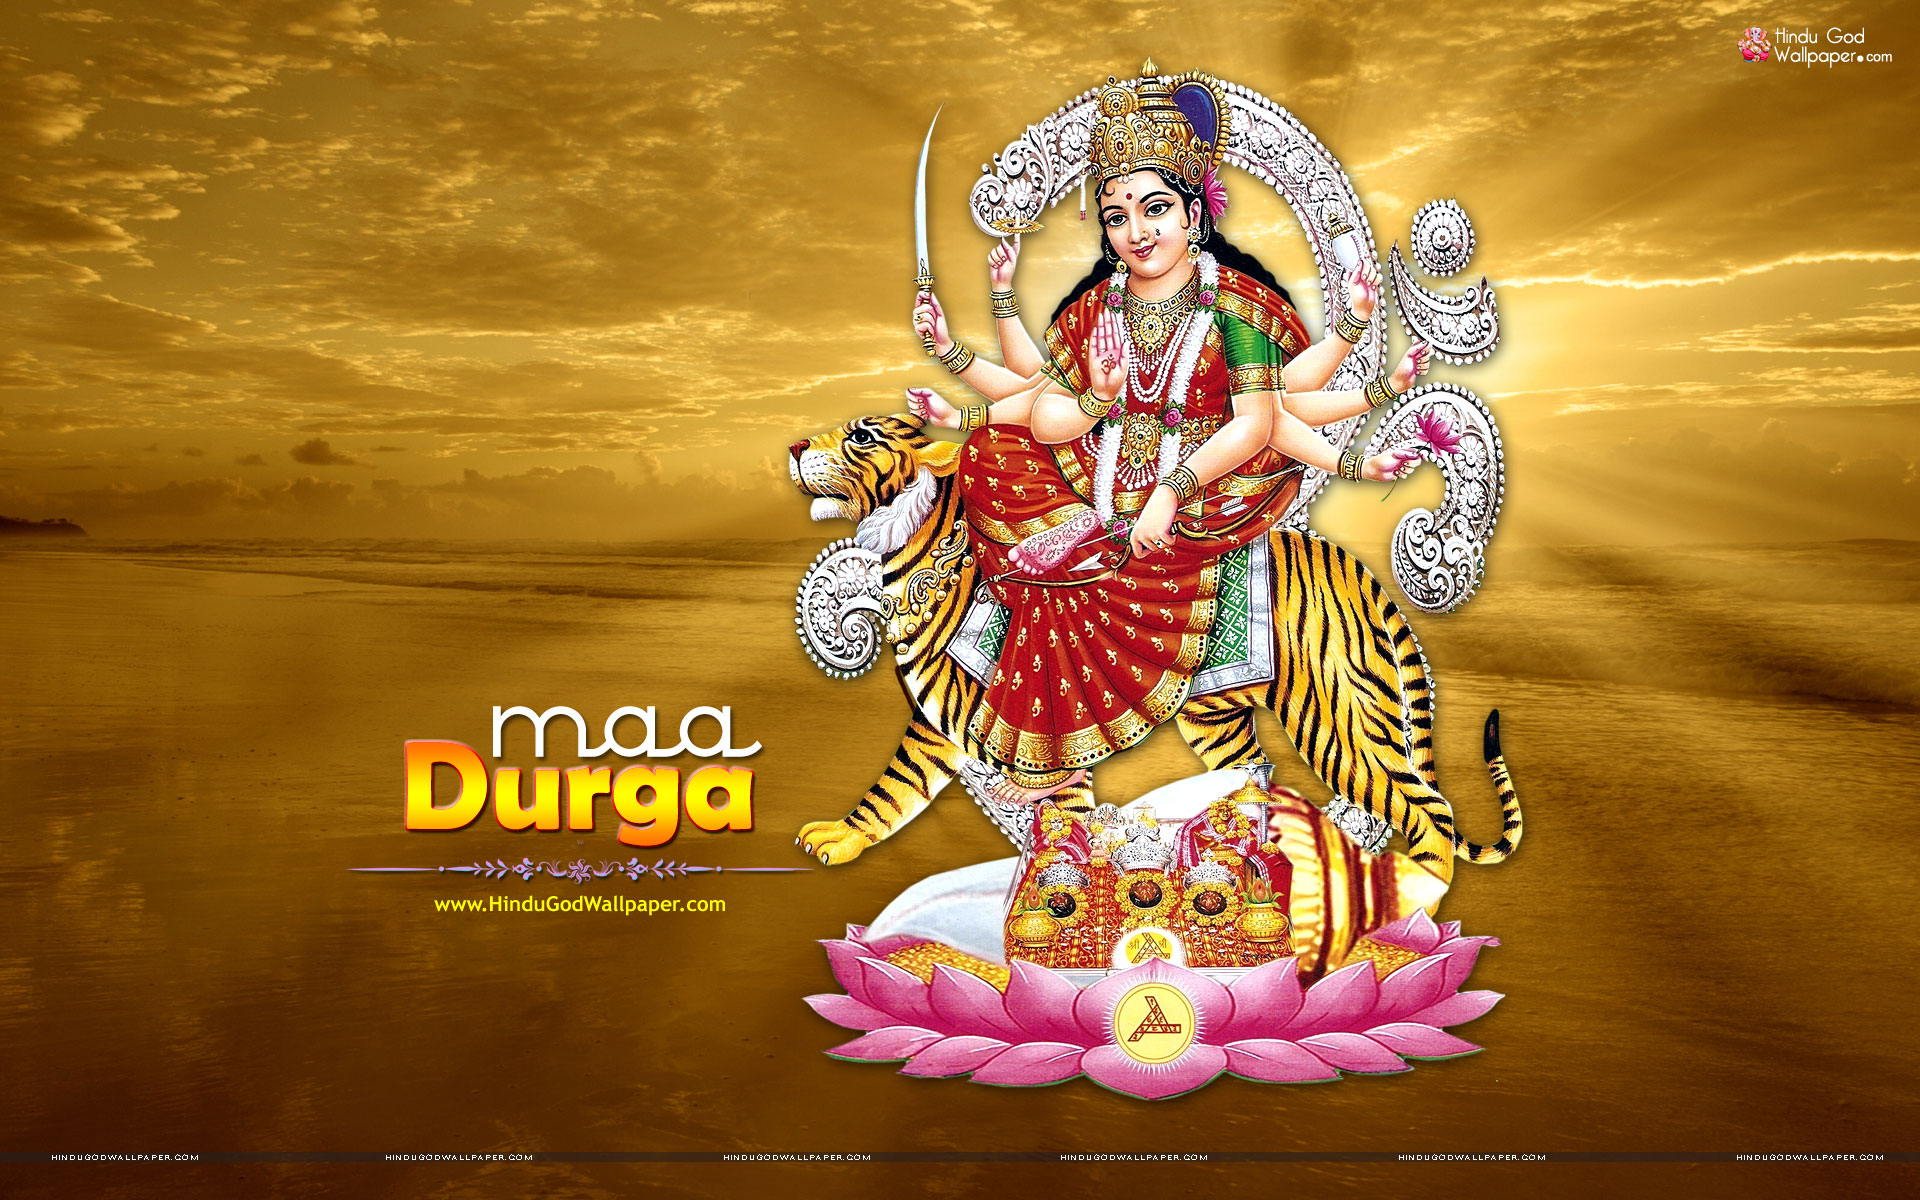 maa durga wallpaper full size for desktop download